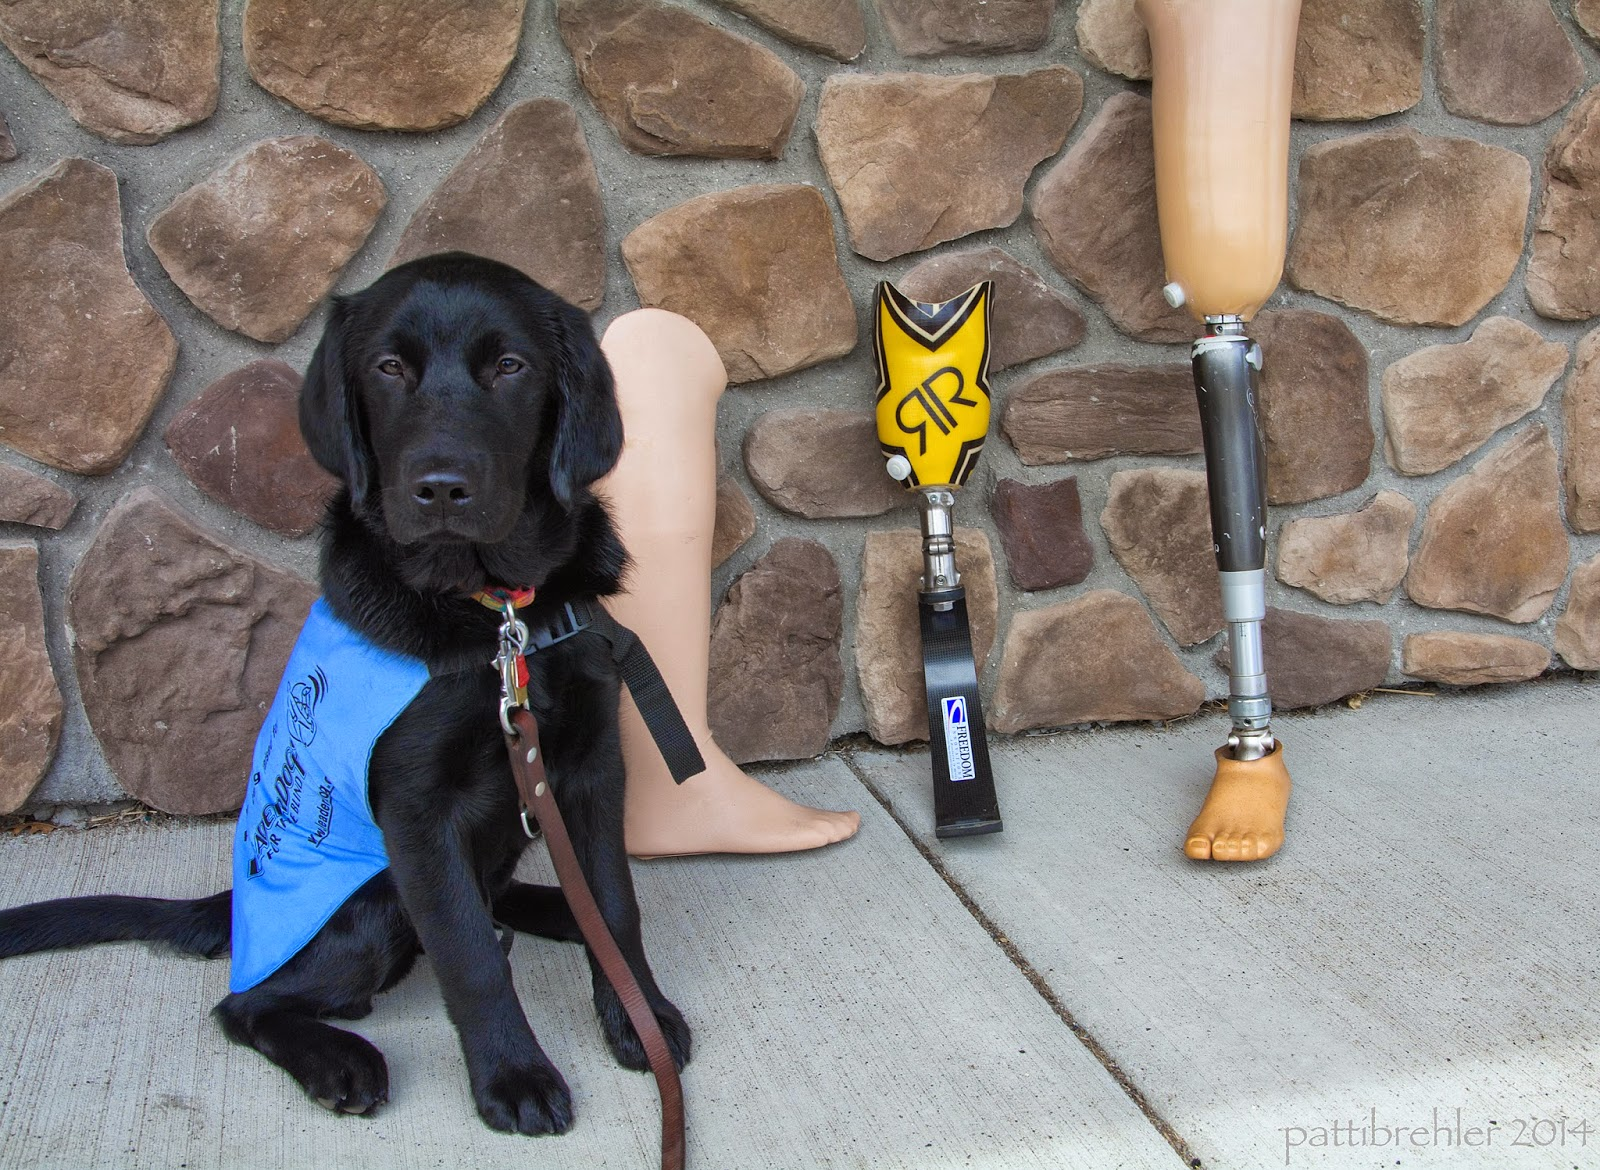 A young black lab/golden retriever mix puppy is sitting on a sidewalk in front of a stone wall looking at the camers. The puppy is wearing the baby-blue Future Leader Dog working jacket. A brown leash is attached to her coller. Leaning on the right side of the picture are three artificial legs. The first one, closest to the puppy, is from the knee down and it looks like a mannequin lower leg and foot. The middle one is futuristic and made of graphite, from the knee down, the one on the far right is a full leg. The foot and upper leg look like a mannegquin, but the lower leg looks like a metal piston.